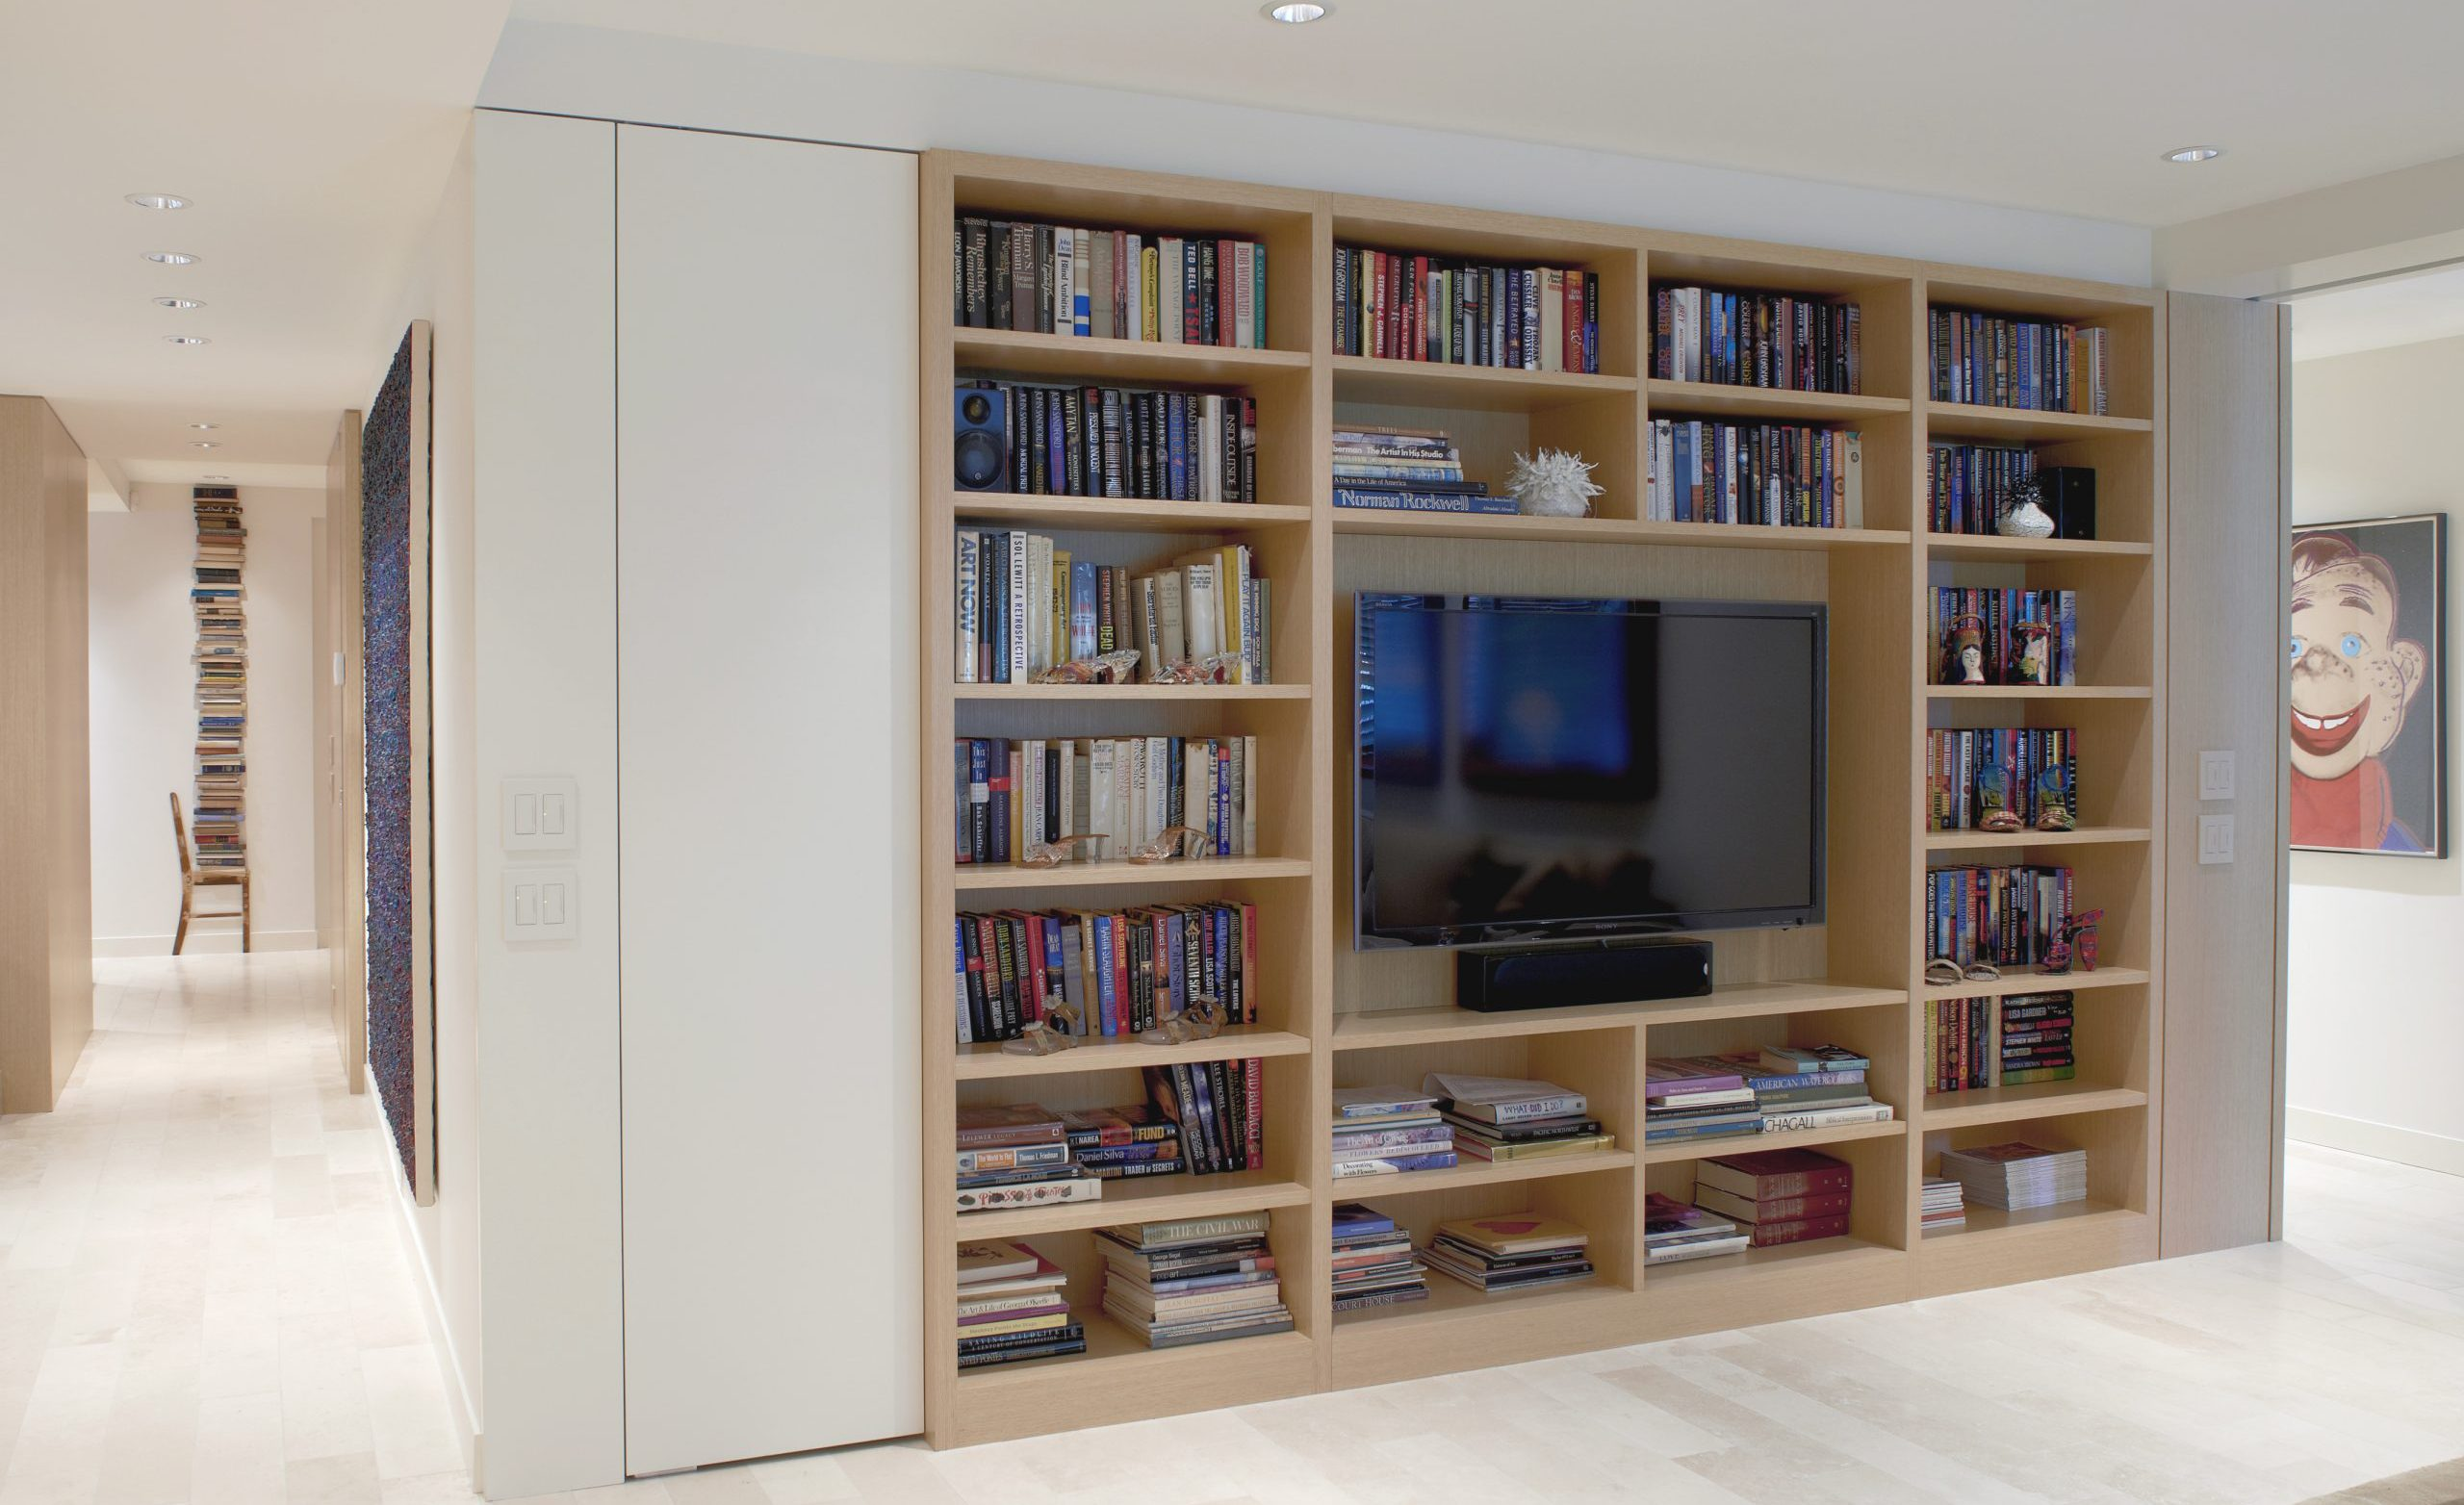 Bookshelves and media center